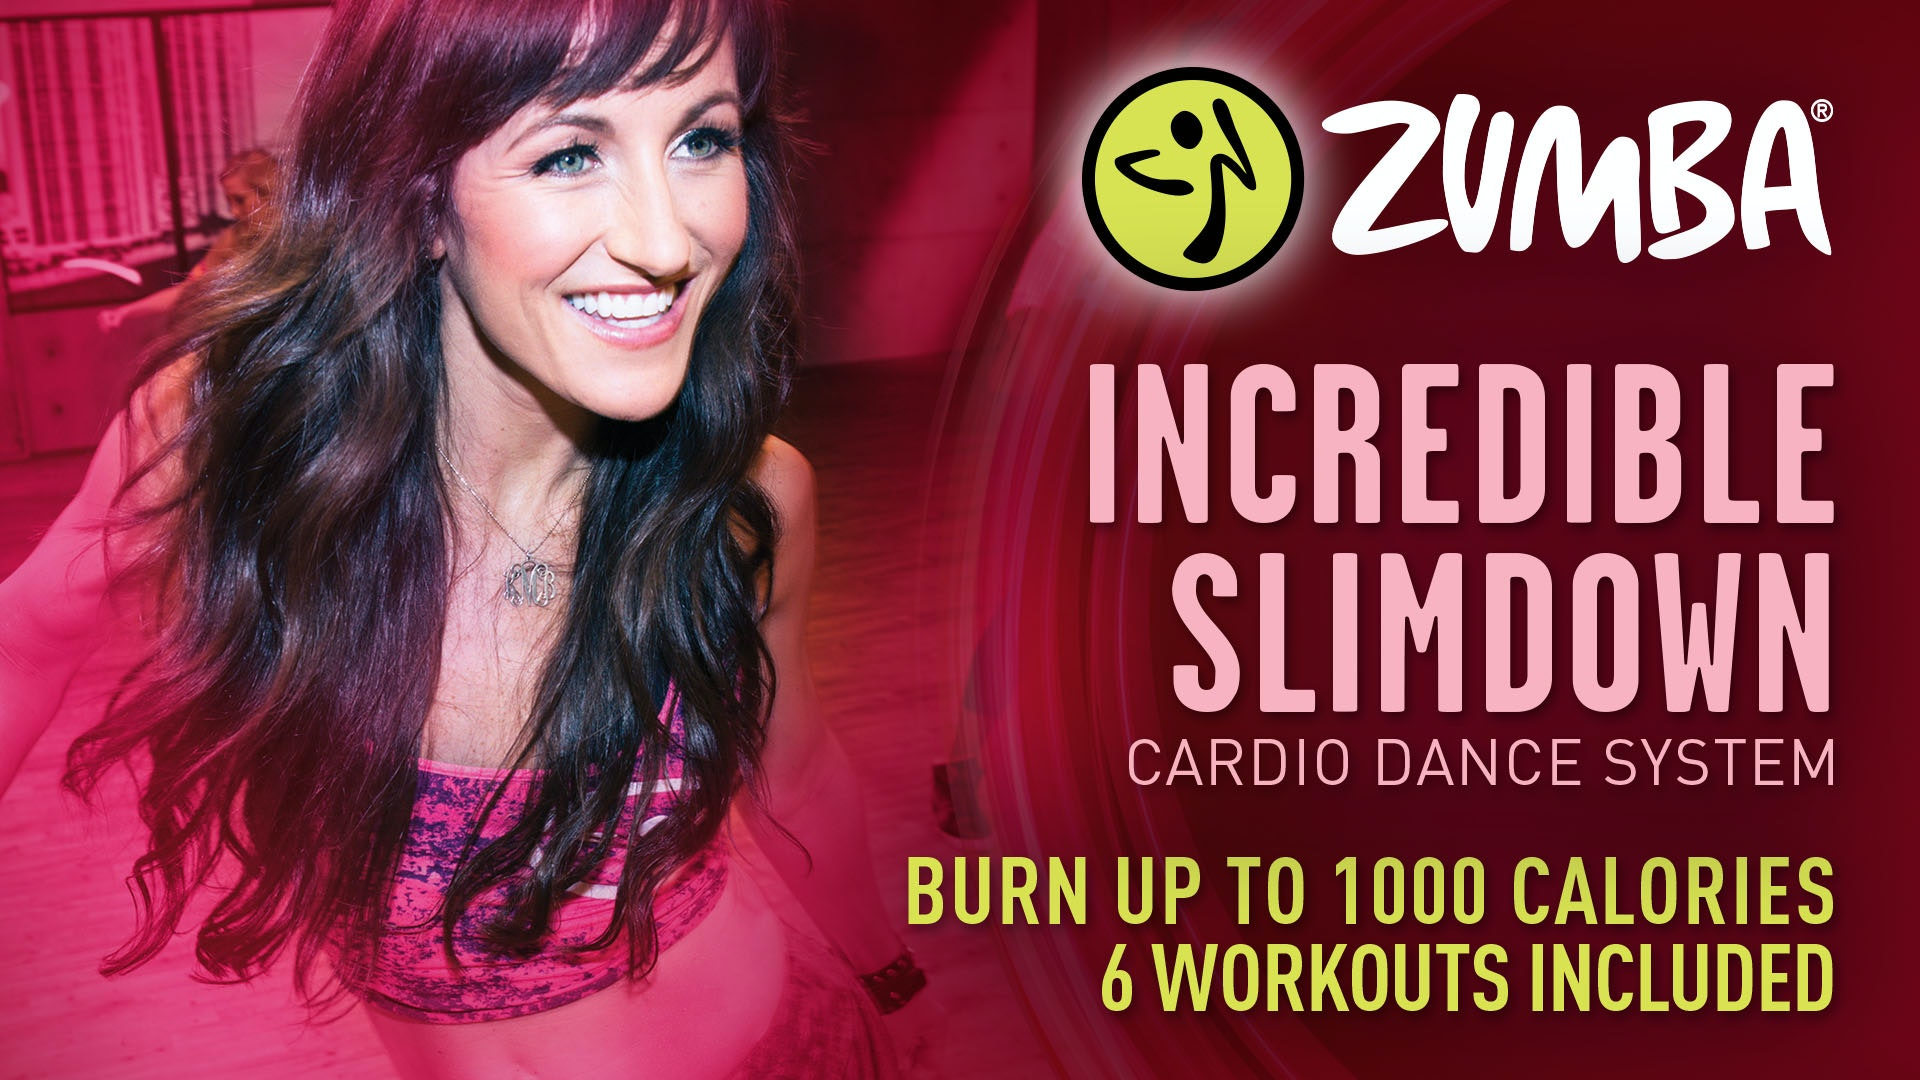 Incredible Slimdown Cardio Dance System